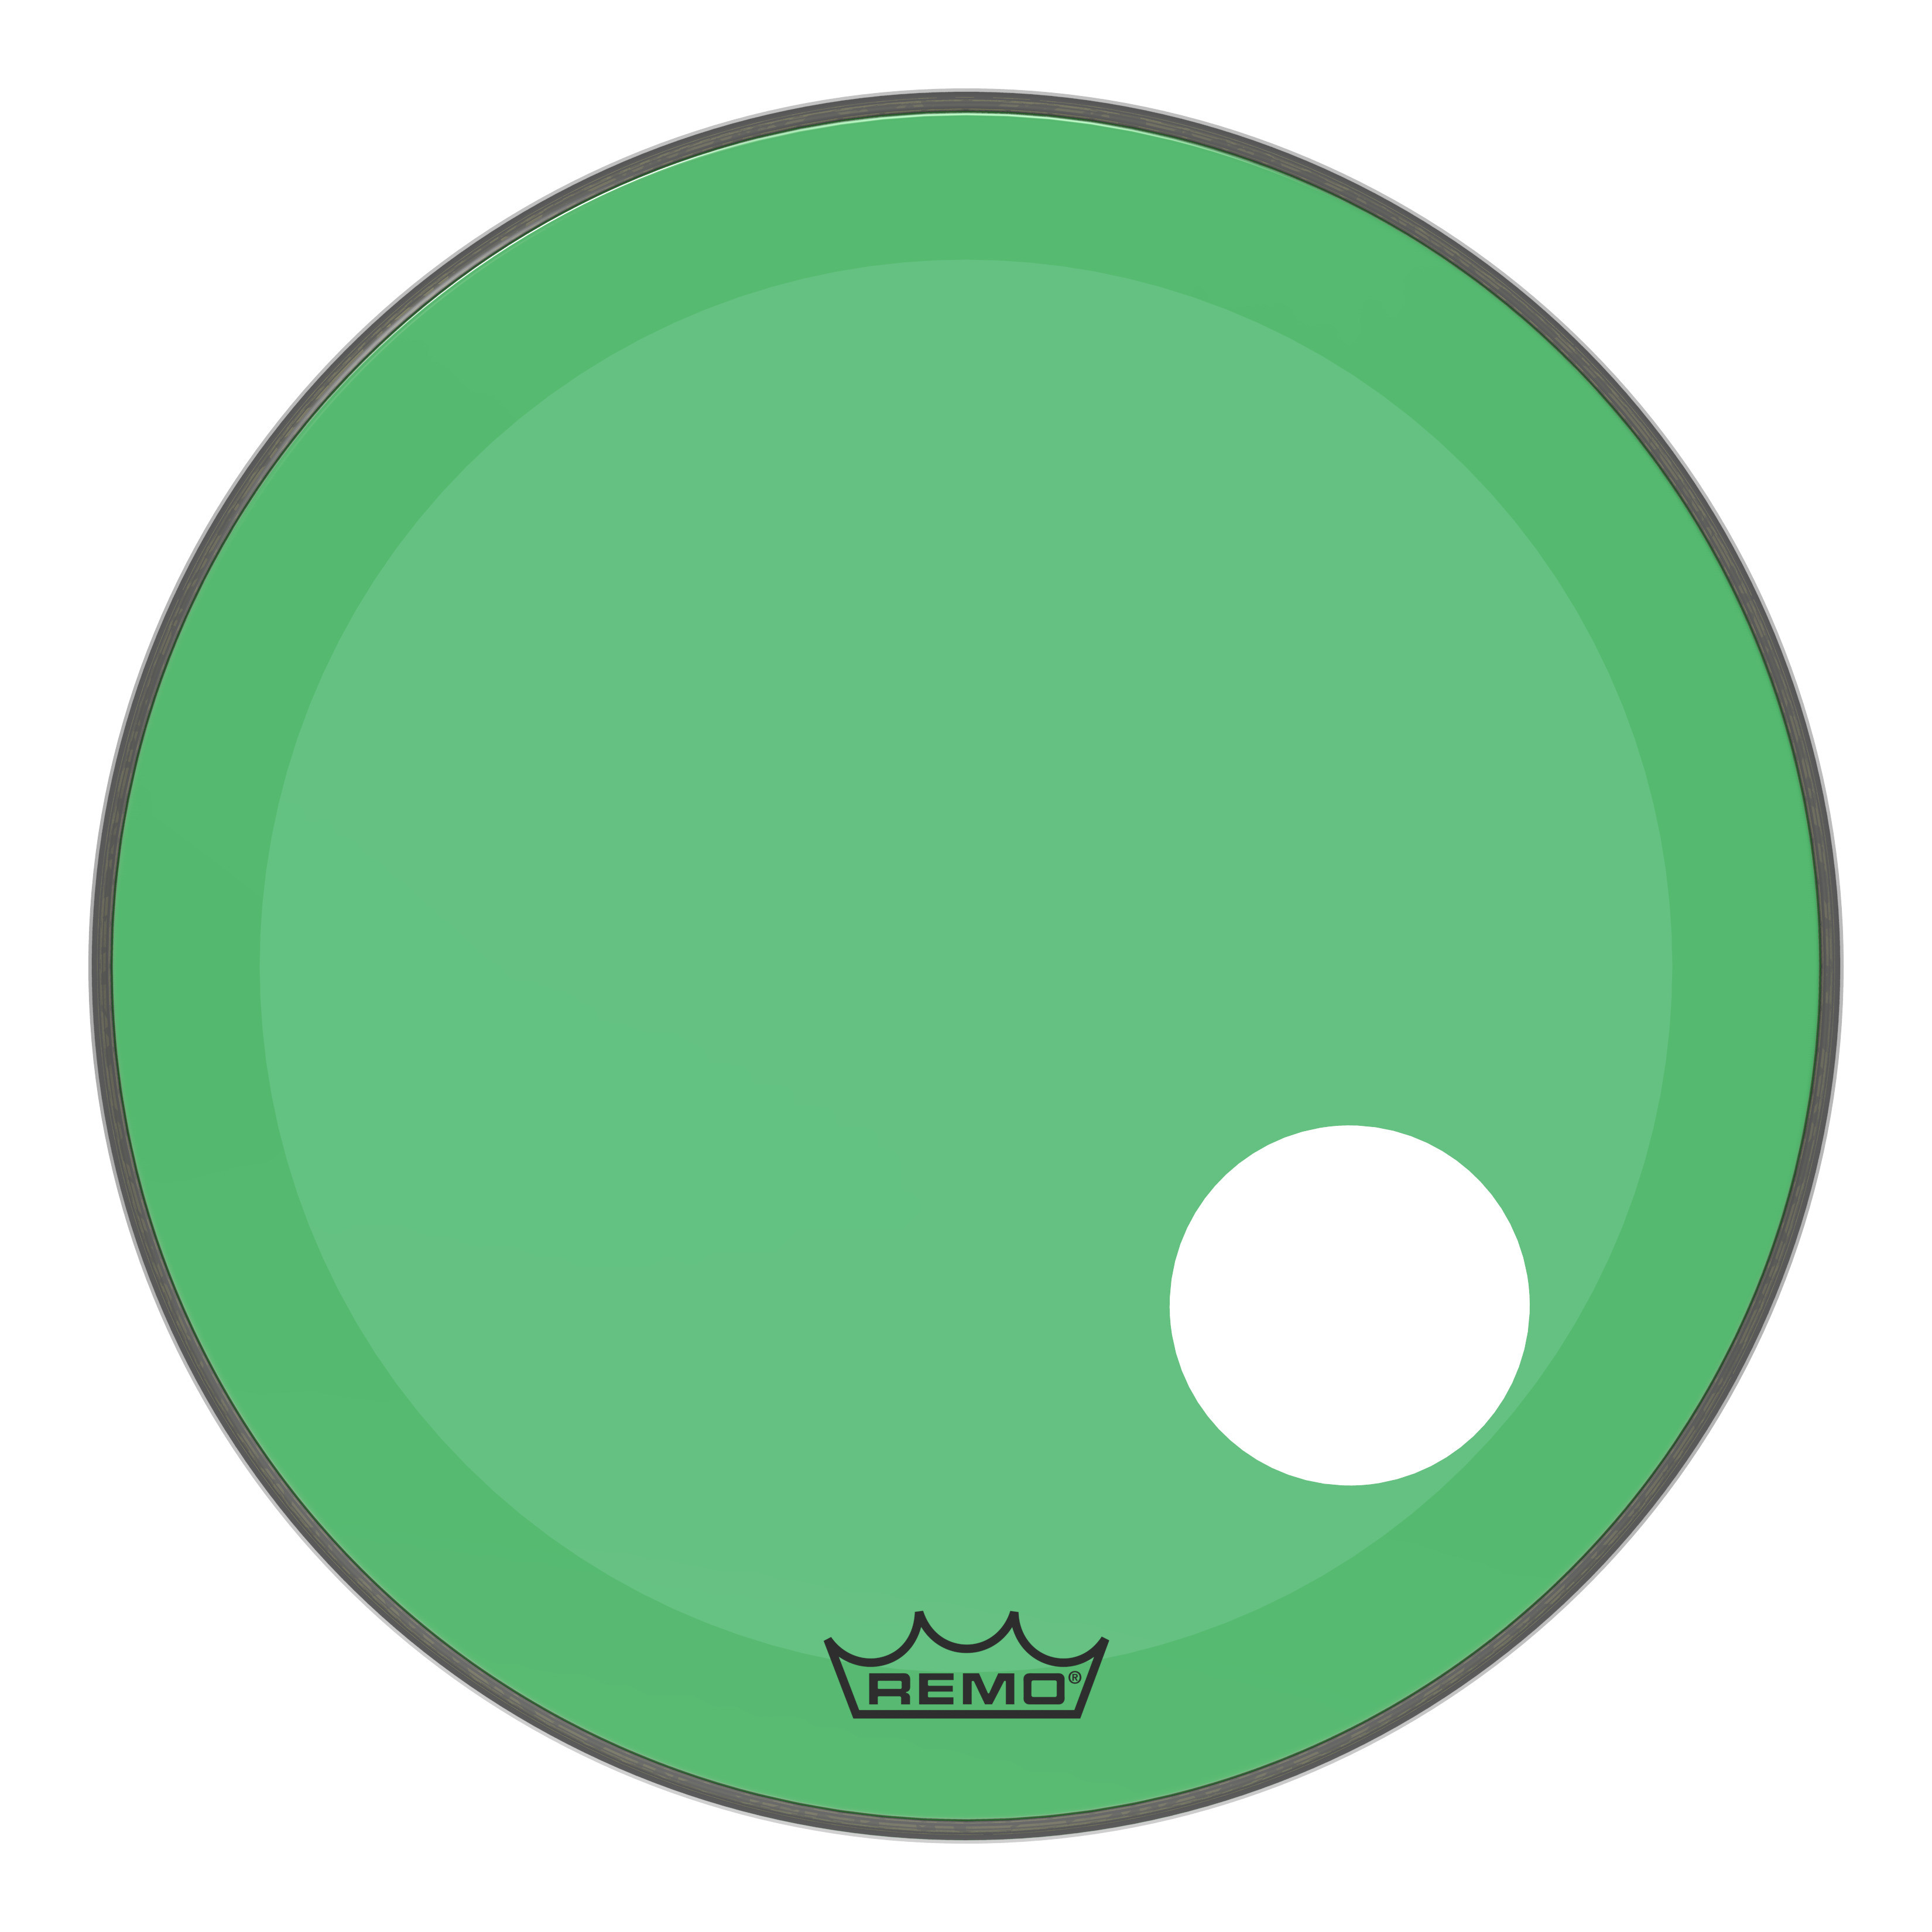 remo powerstroke p3 colortone green bass drumhead 22 5 offset hole bass drum heads drum. Black Bedroom Furniture Sets. Home Design Ideas